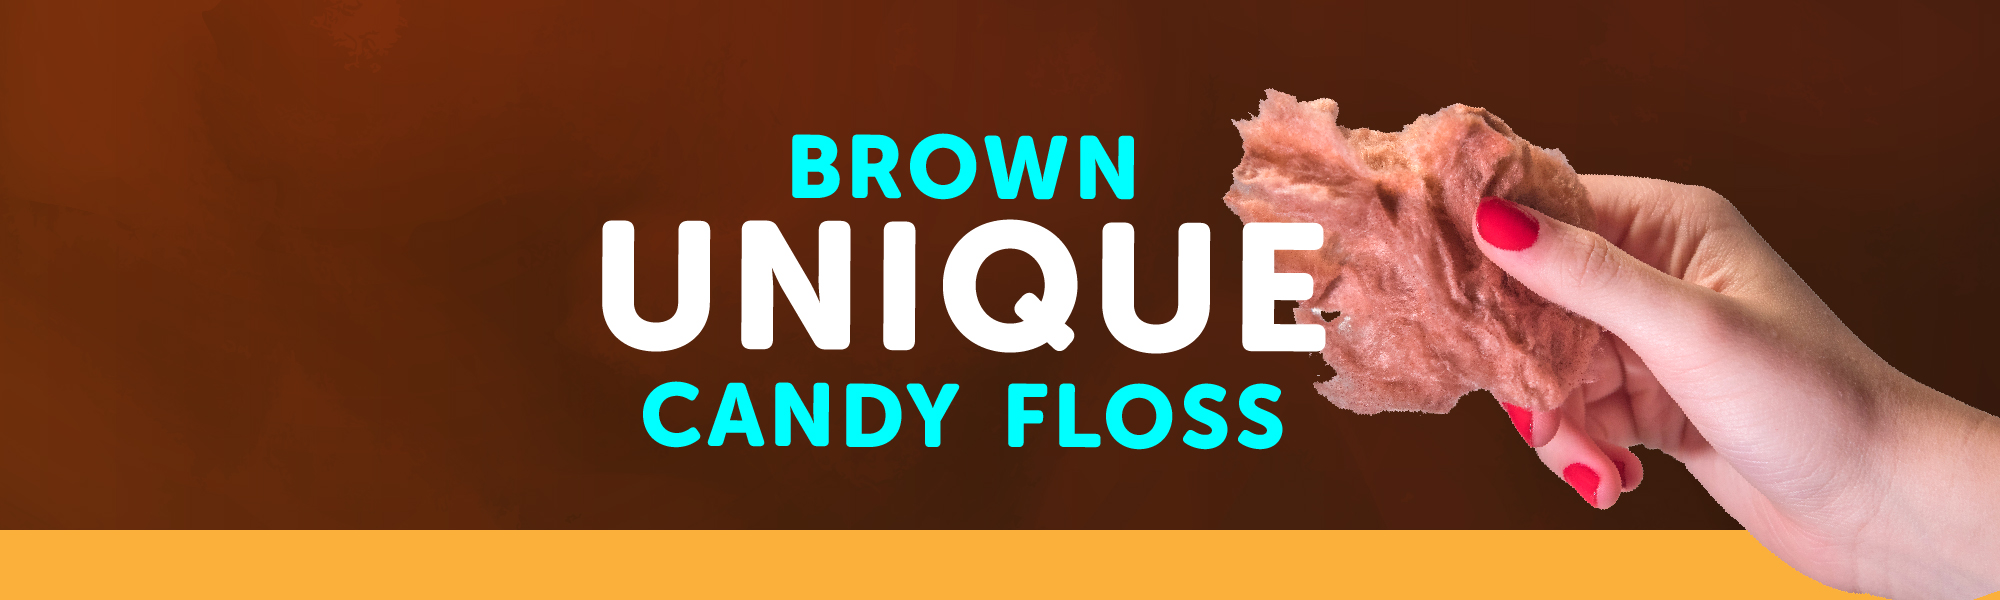 unique brown candy floss. Exclusively offered by Original Bag of Poo